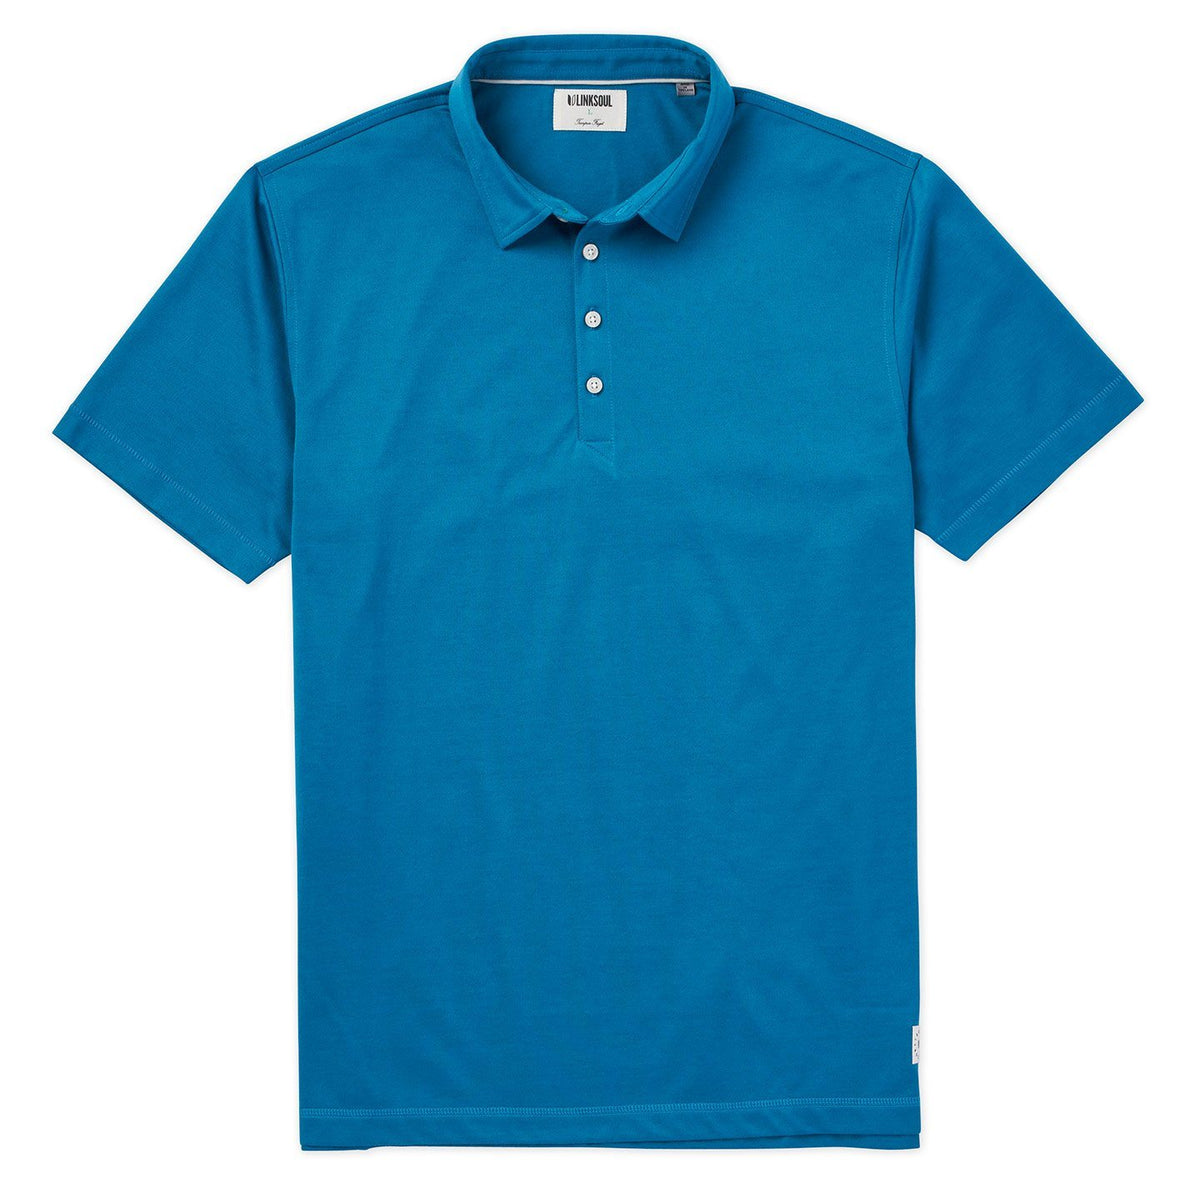 Solid Dry-Tech Knit Polo Shirt